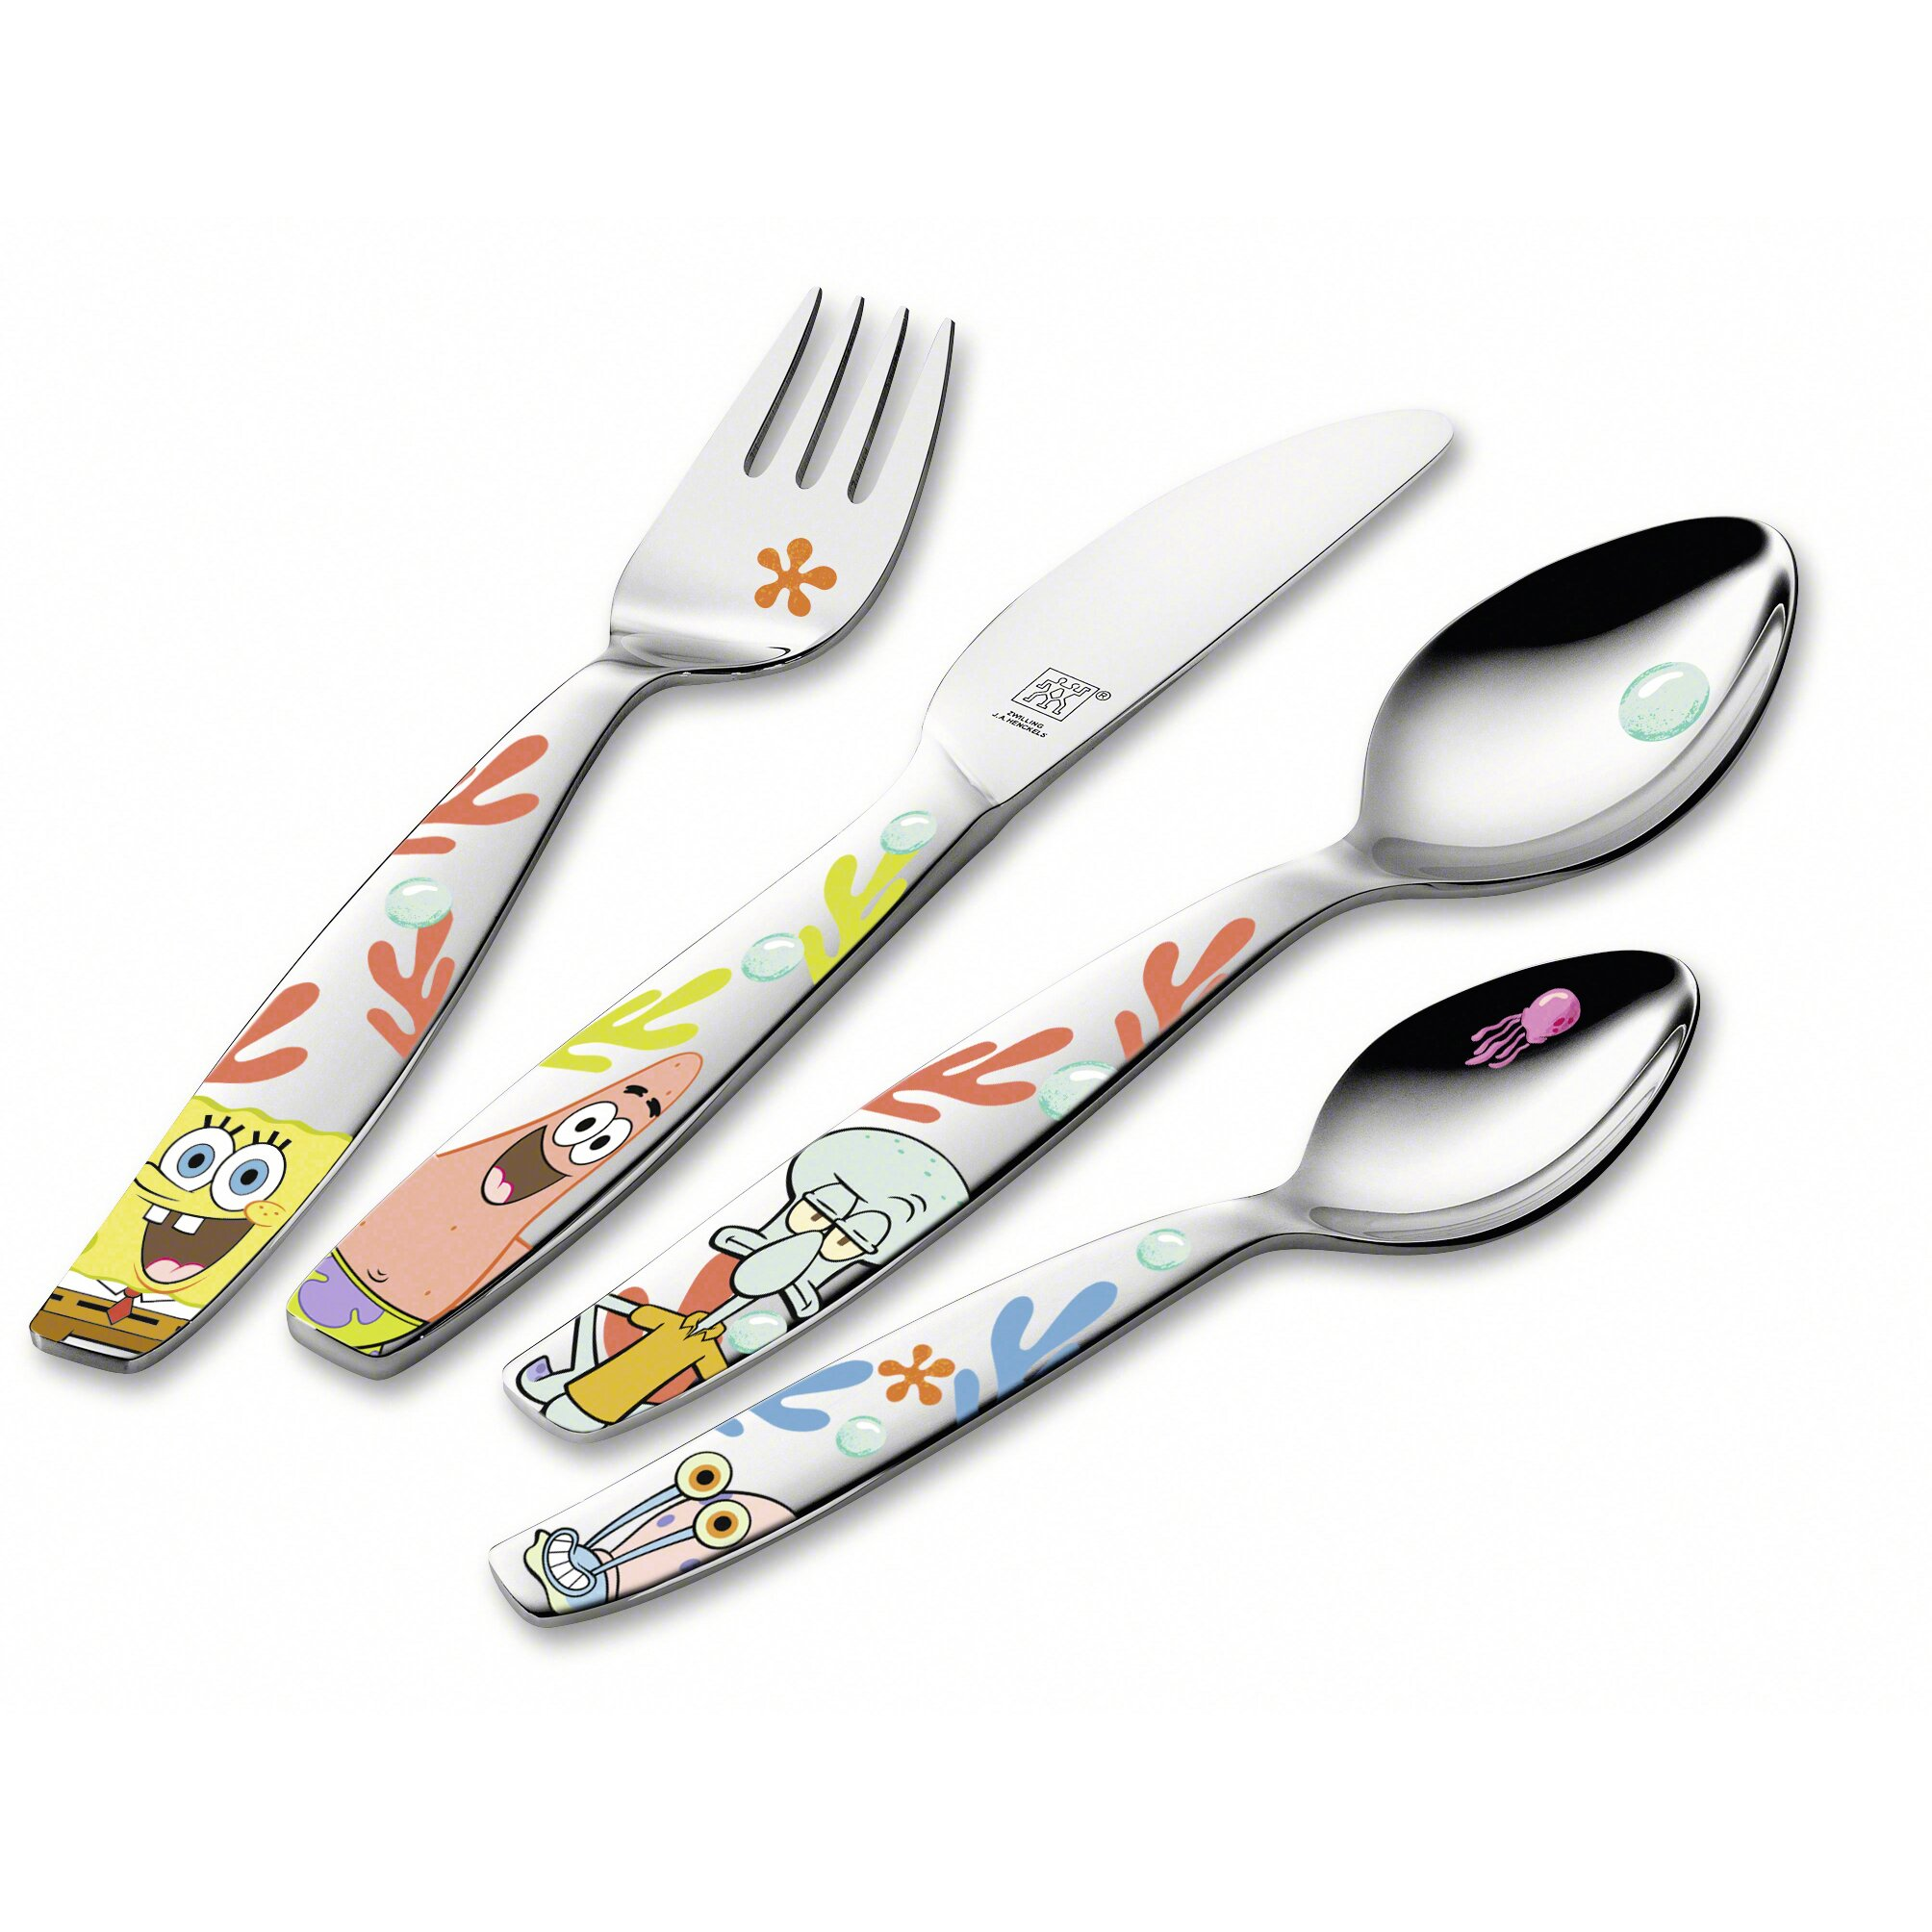 4 piece cutlery set wayfair uk for Spong kitchen set 702